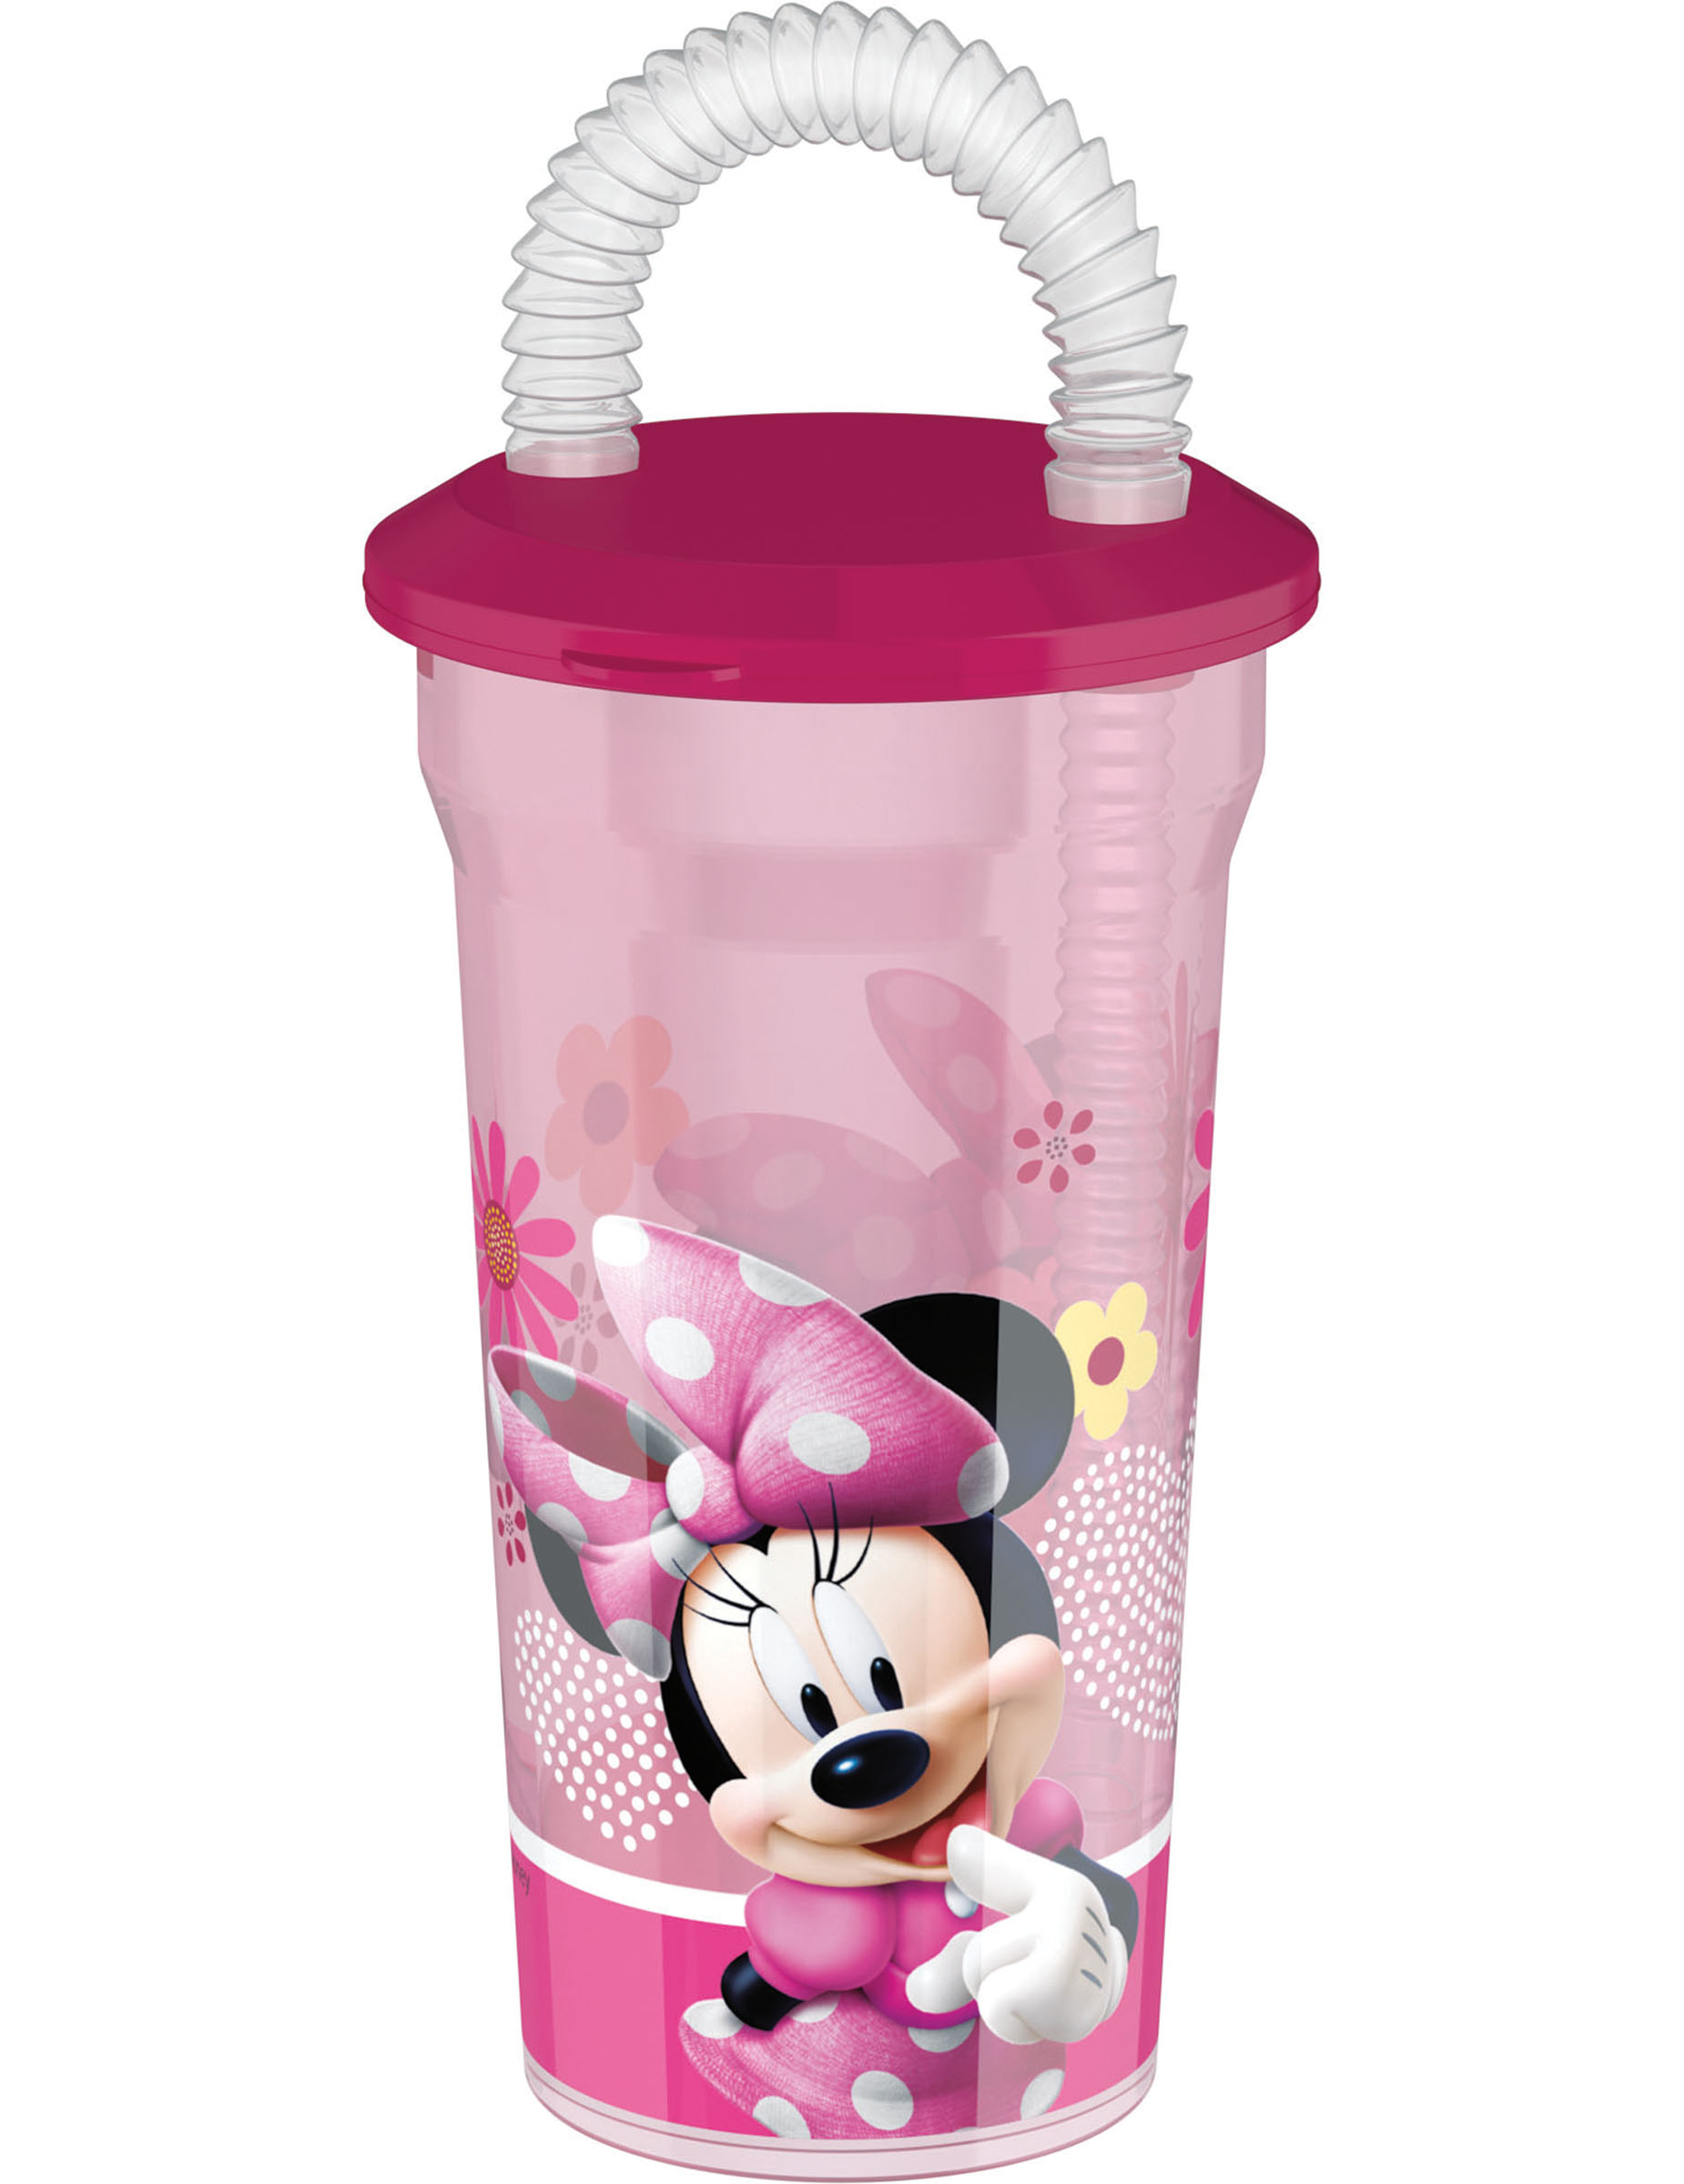 minnie maus becher mit trinkhalm g nstige faschings partydeko zubeh r bei karneval megastore. Black Bedroom Furniture Sets. Home Design Ideas